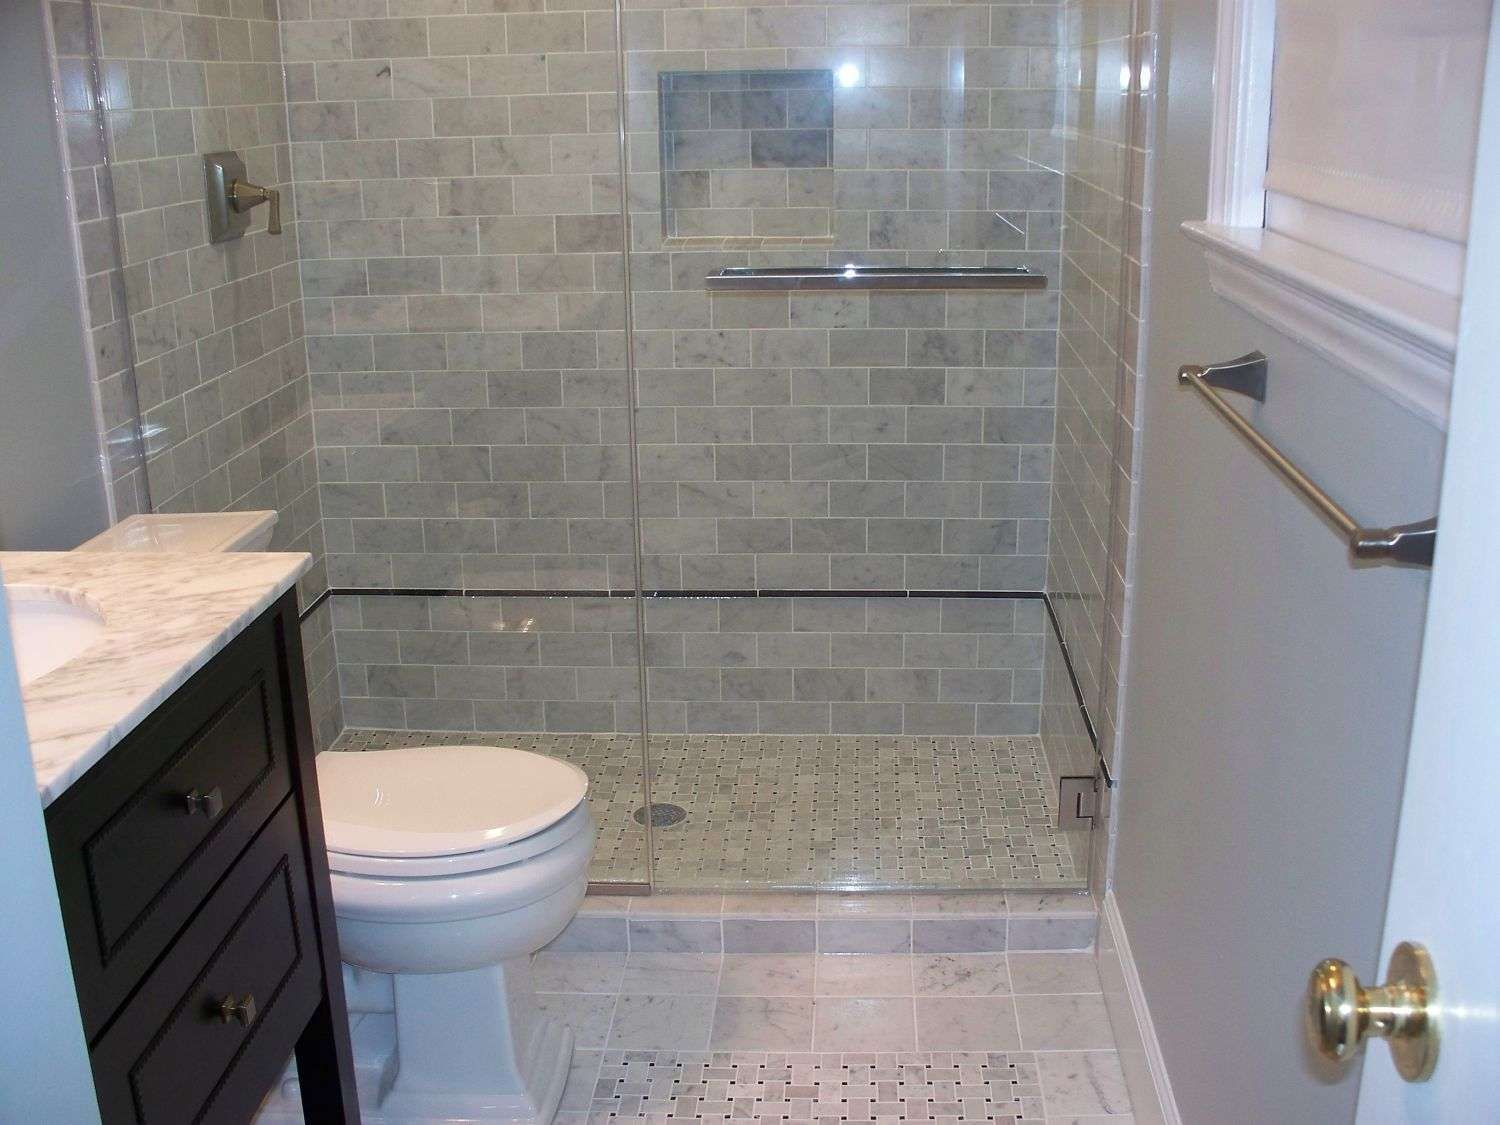 Find interesting and elegant bathroom shower tile ideas right here  Know some of the most popular design today create an Modern Bathroom Remodel Designer Jennifer Jones